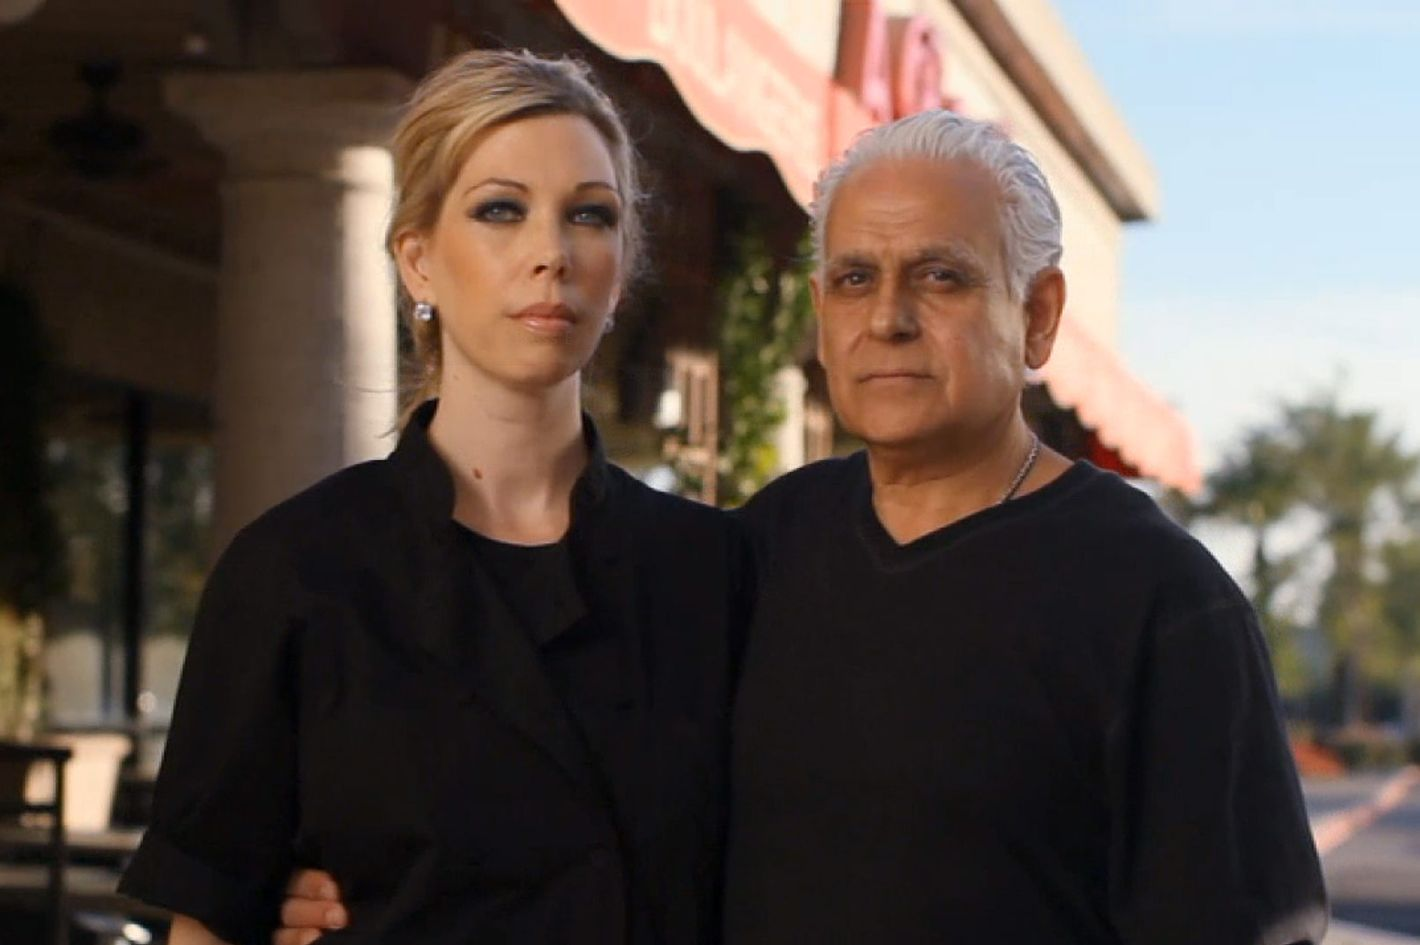 That Disastrous I Kitchen Nightmares I Couple Is Trying To Sell Their Infamous Bakery